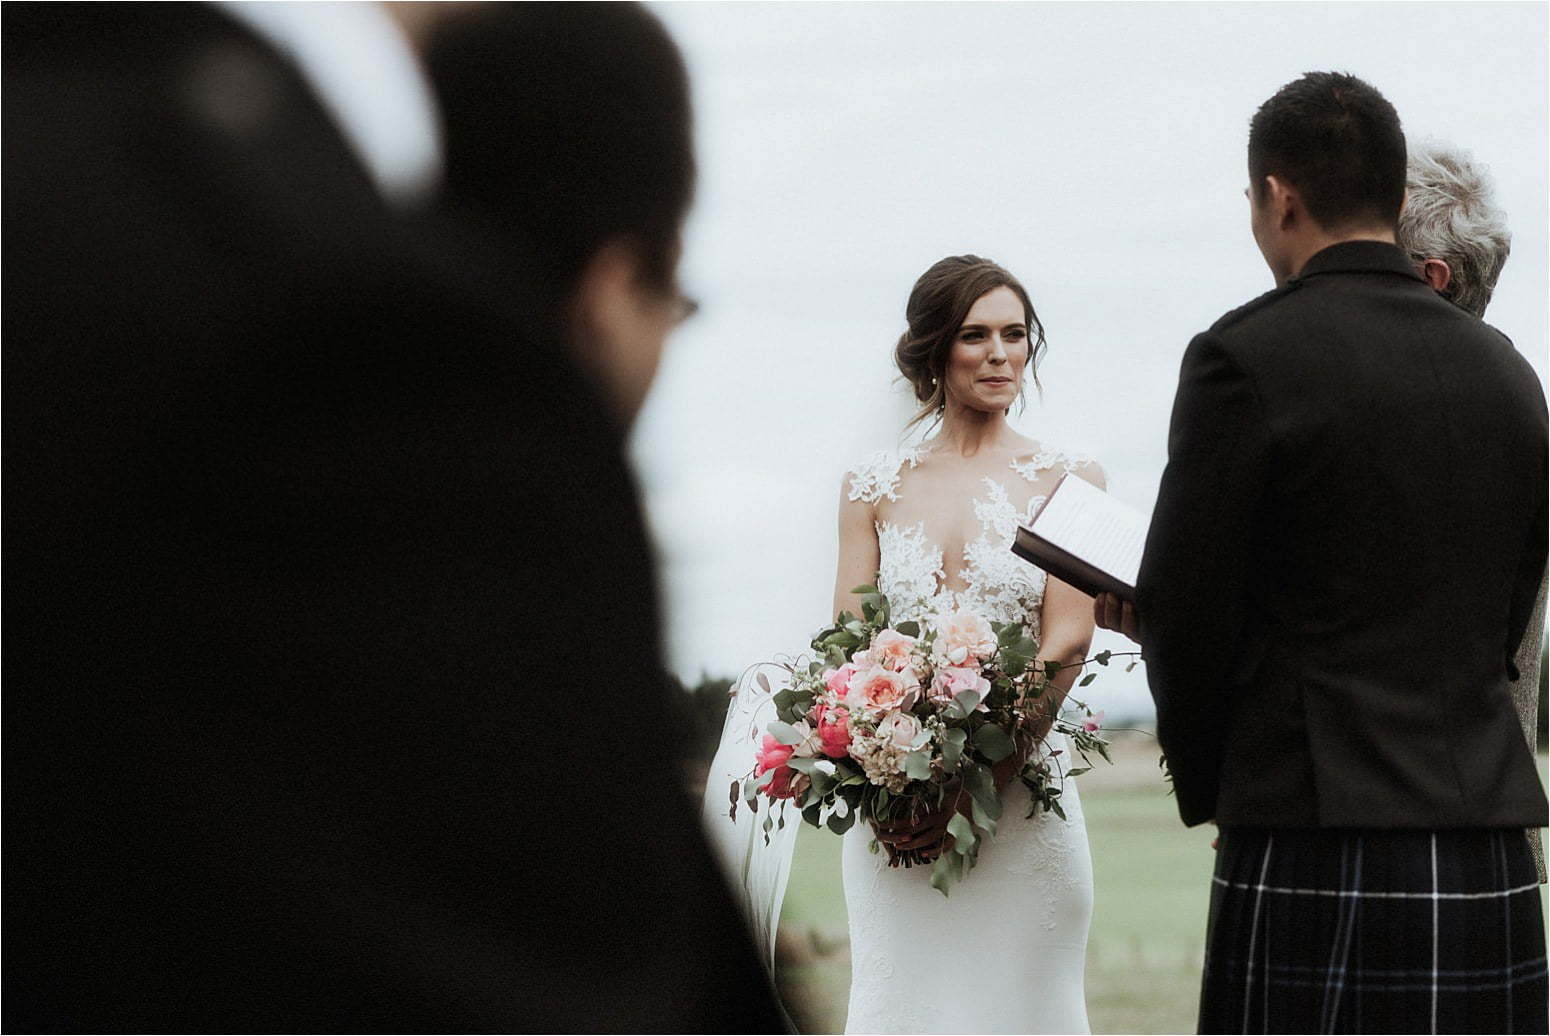 Scotland wedding photographer at bachilton barn